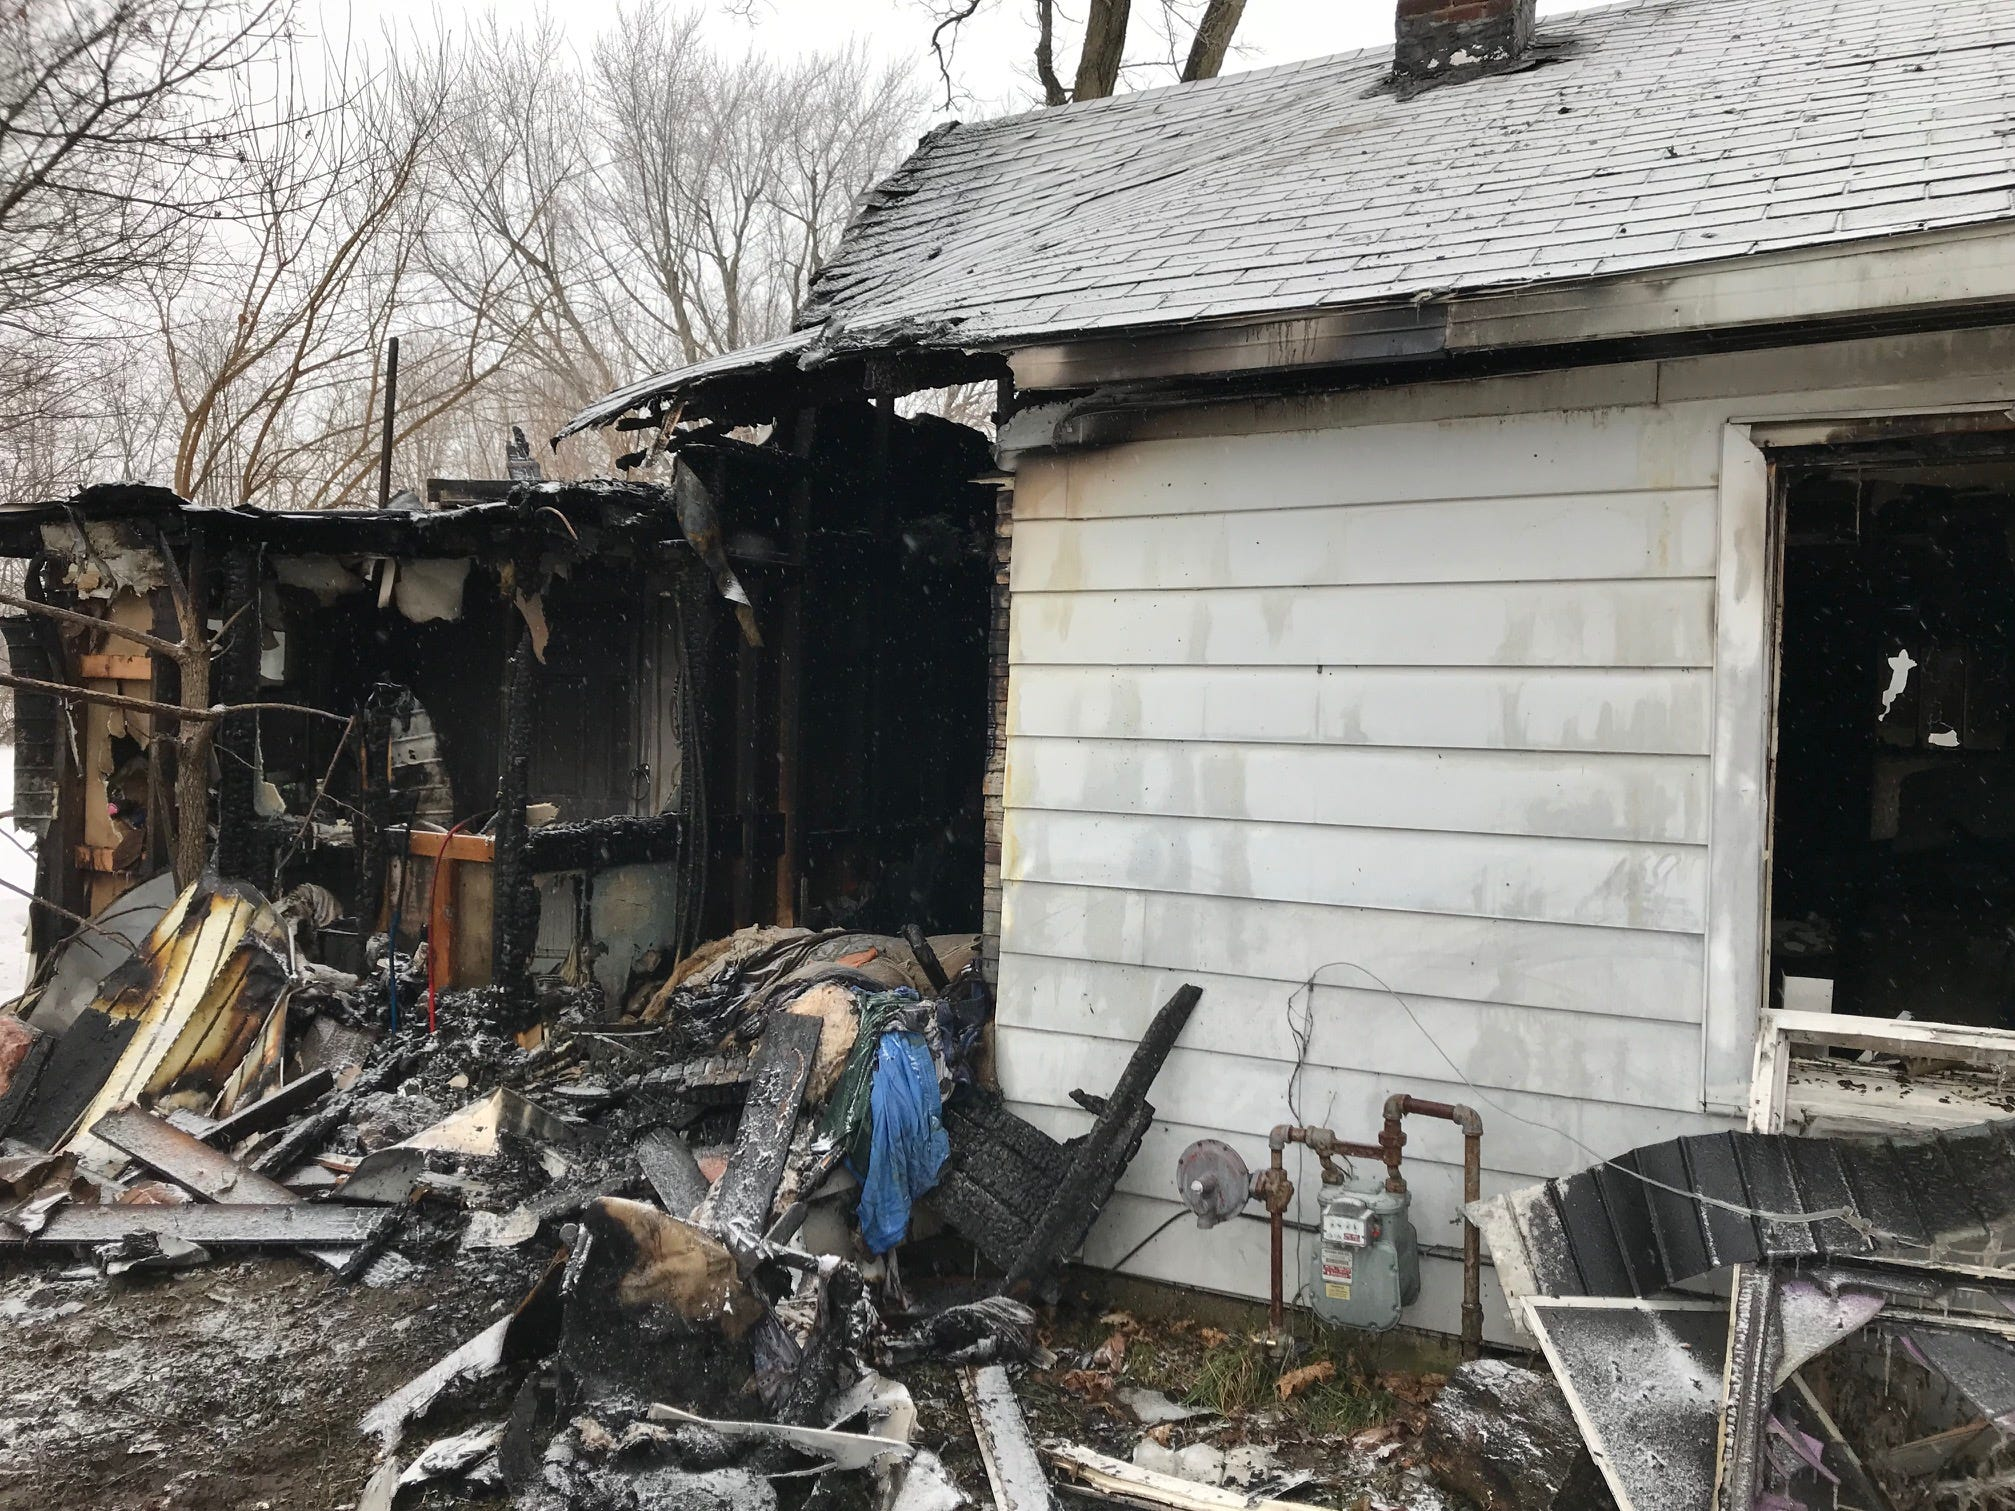 A Muncie man was killed early Tuesday when a fire broke out in his home in the 1700 block of South Burlington Drive.